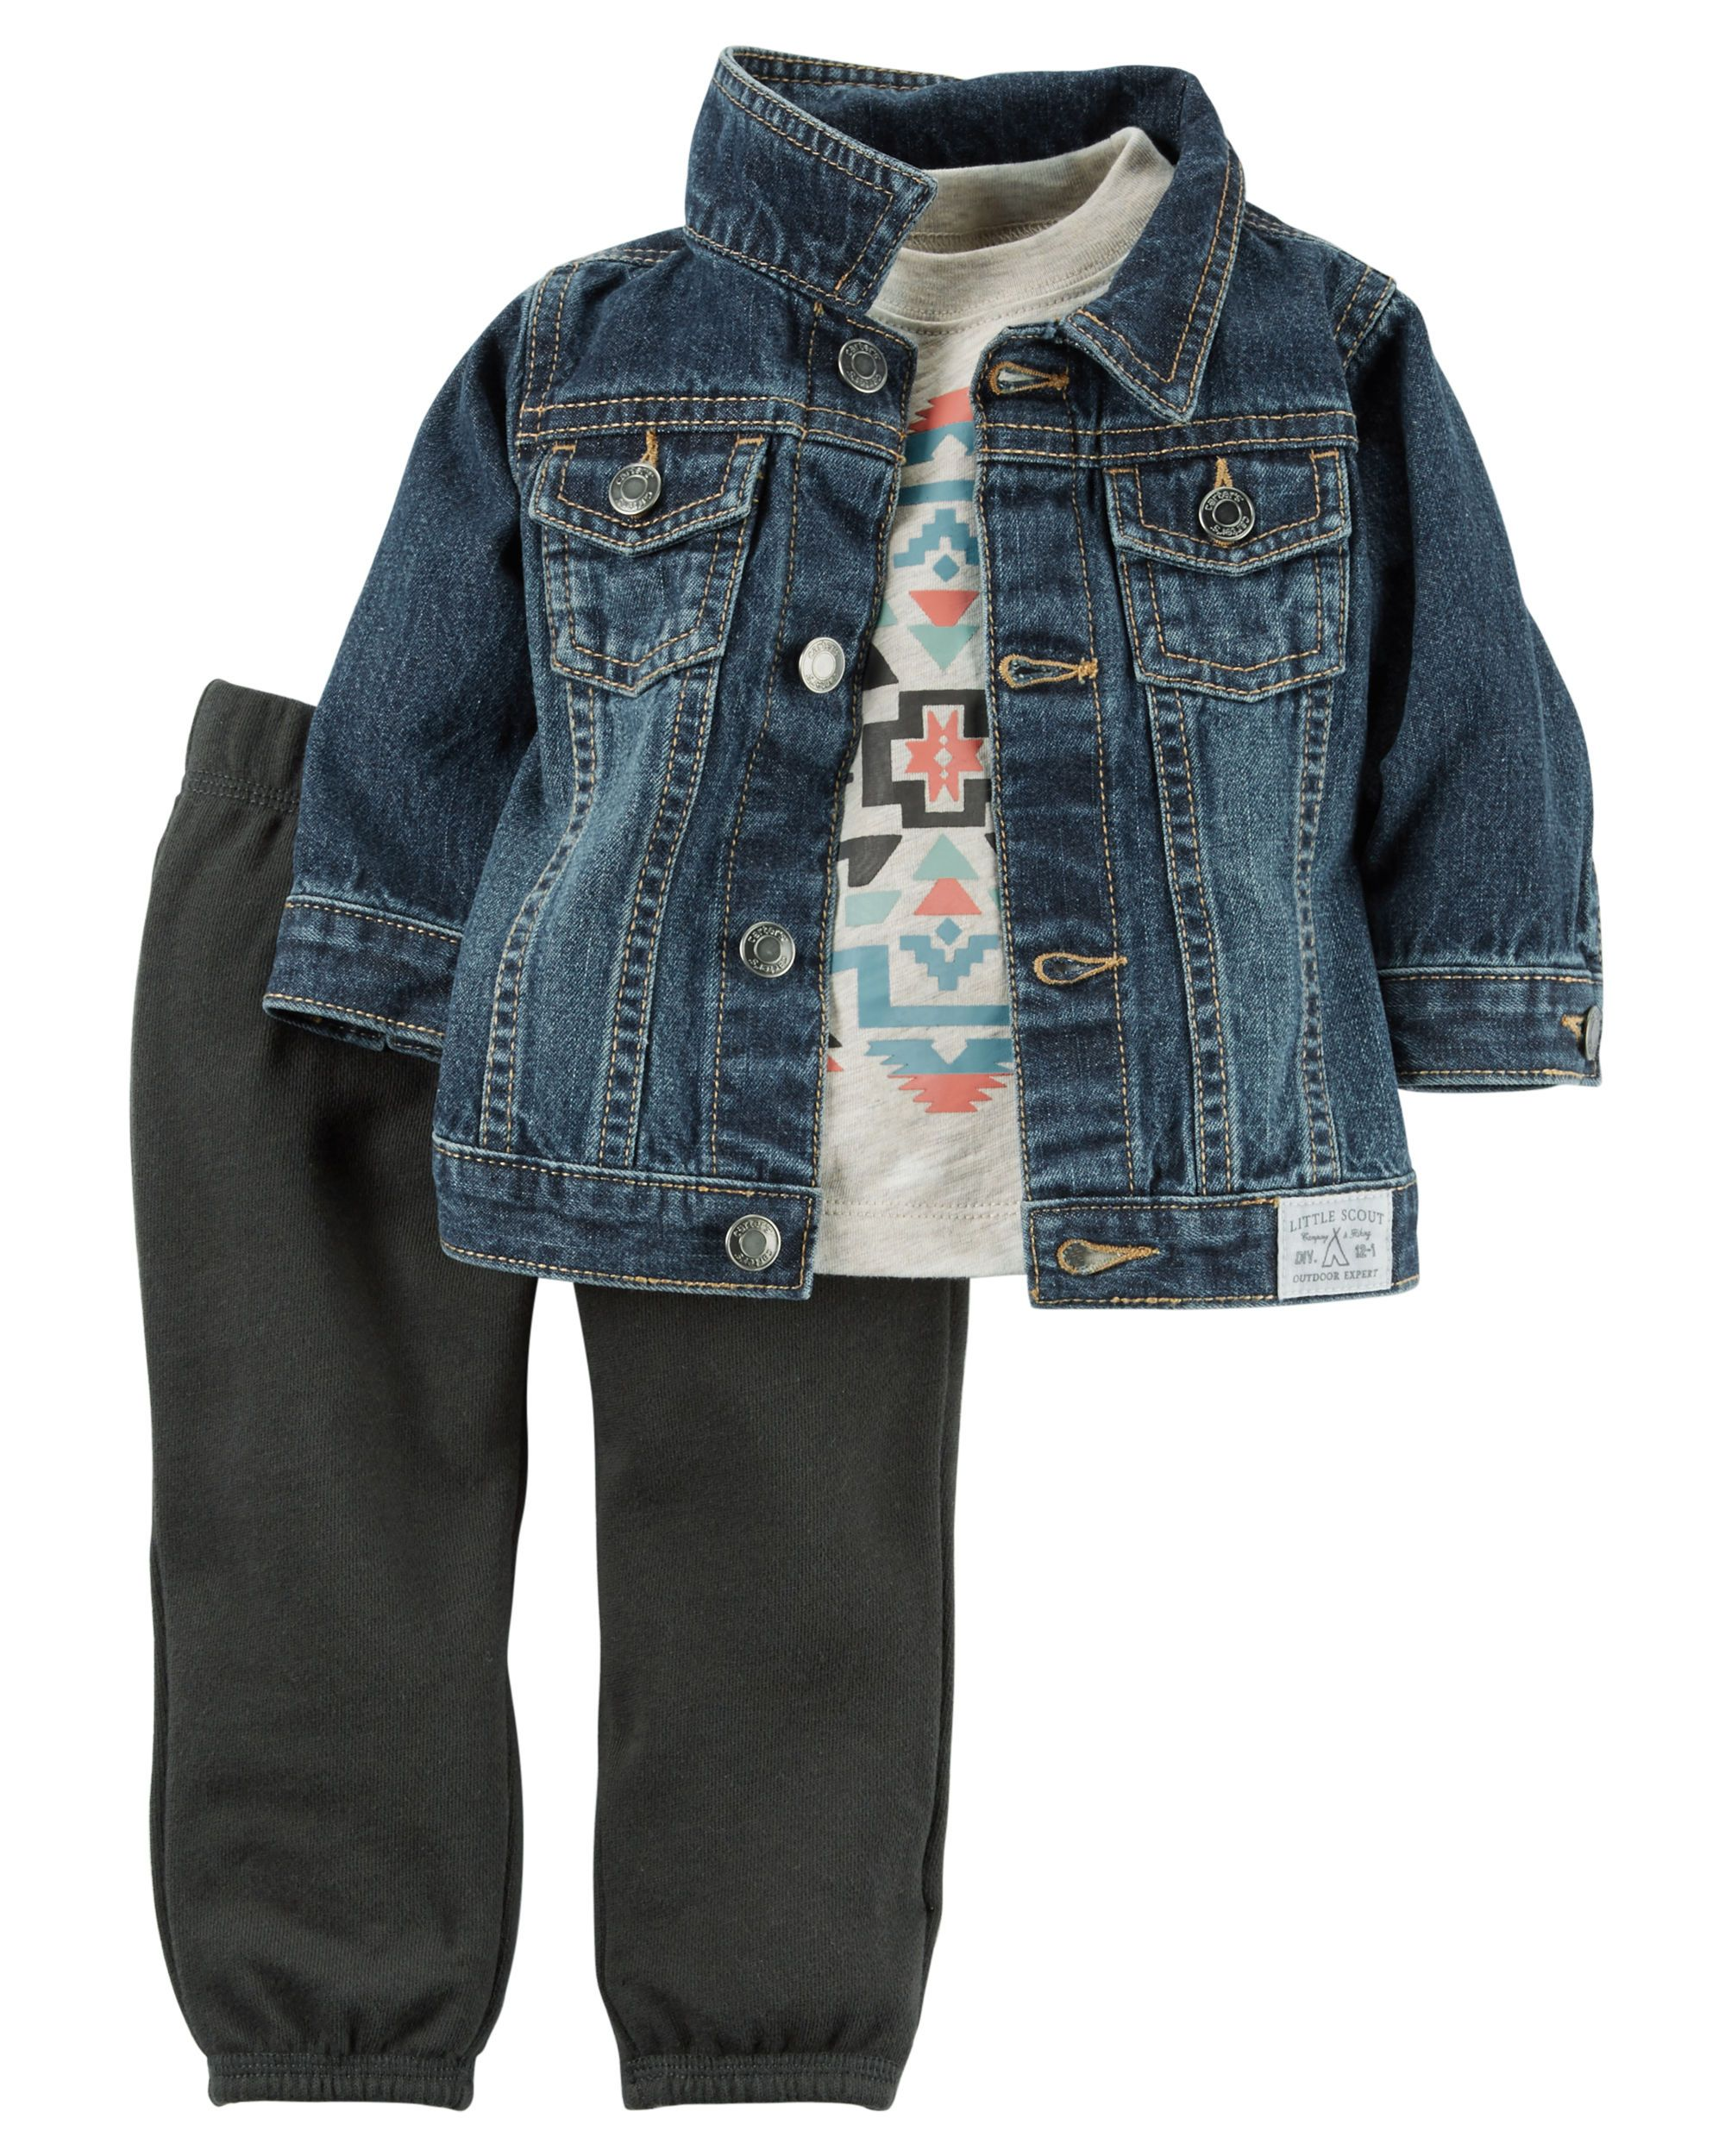 3 Piece Denim Jacket Terry Pant Set Boy Outfits Boys Fall Outfits Baby Boy Outfits [ 2500 x 2000 Pixel ]